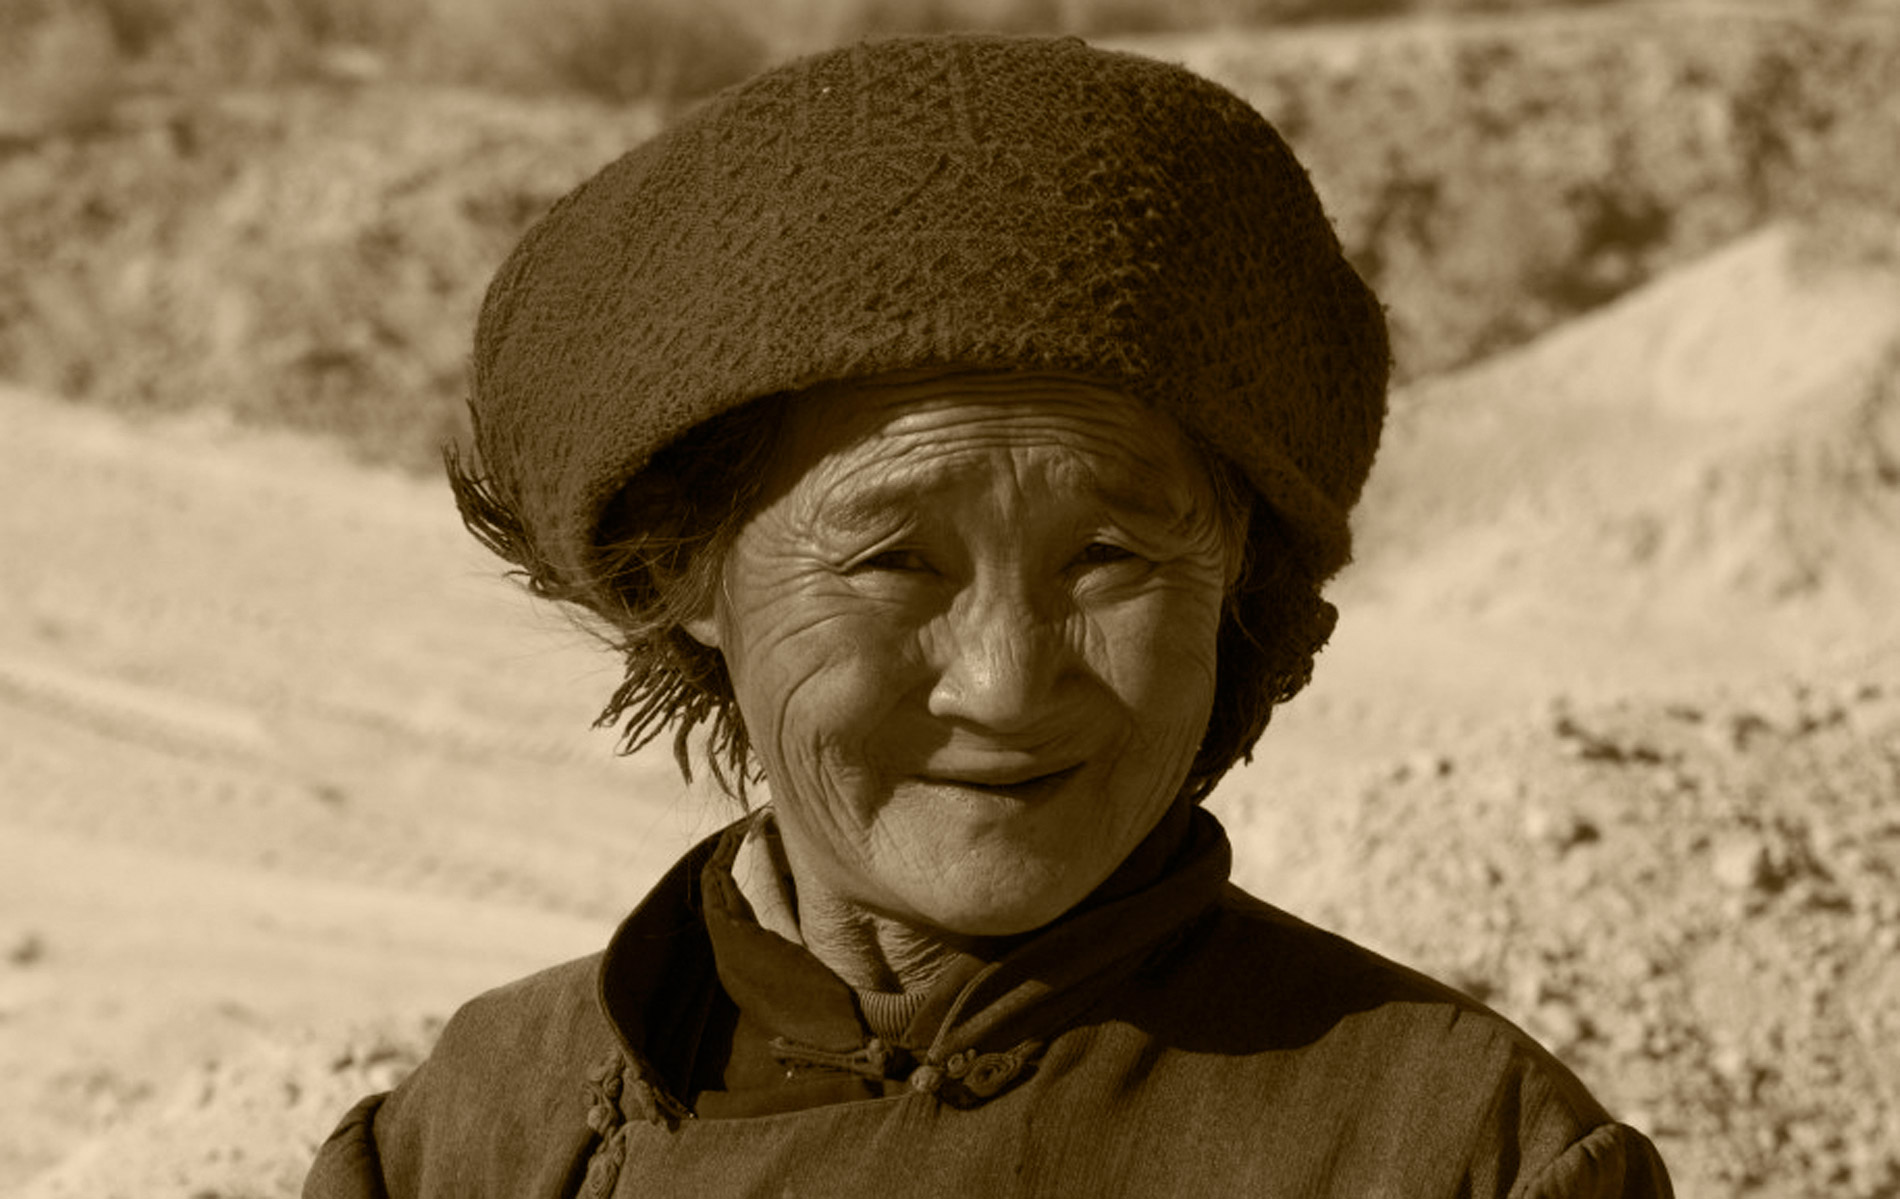 CHINA - Alashan Desert- Old Woman Farmer - © Graziano Villa